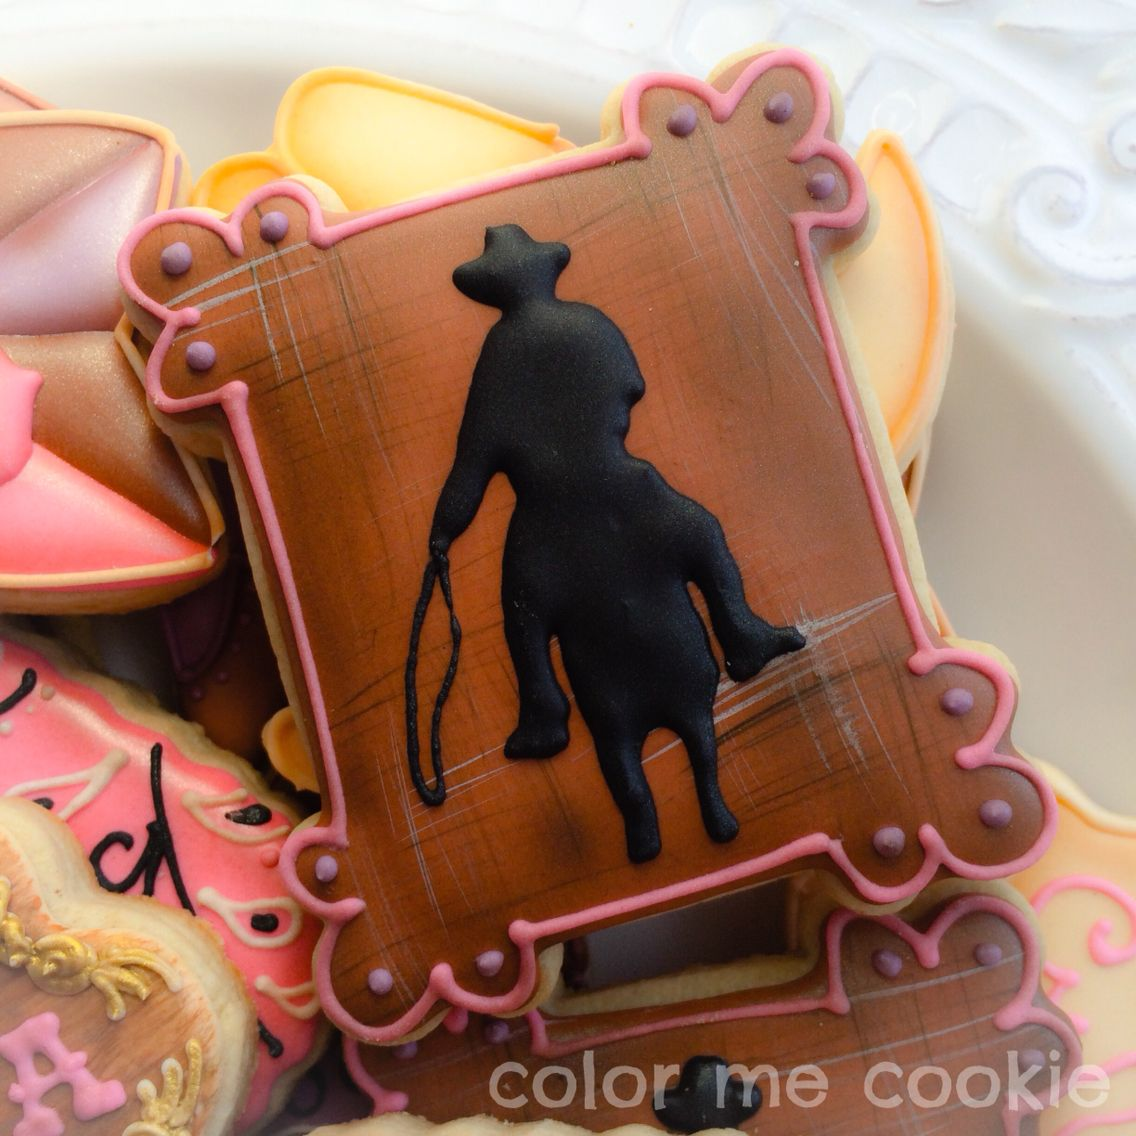 Cowgirl/cowboy cookie